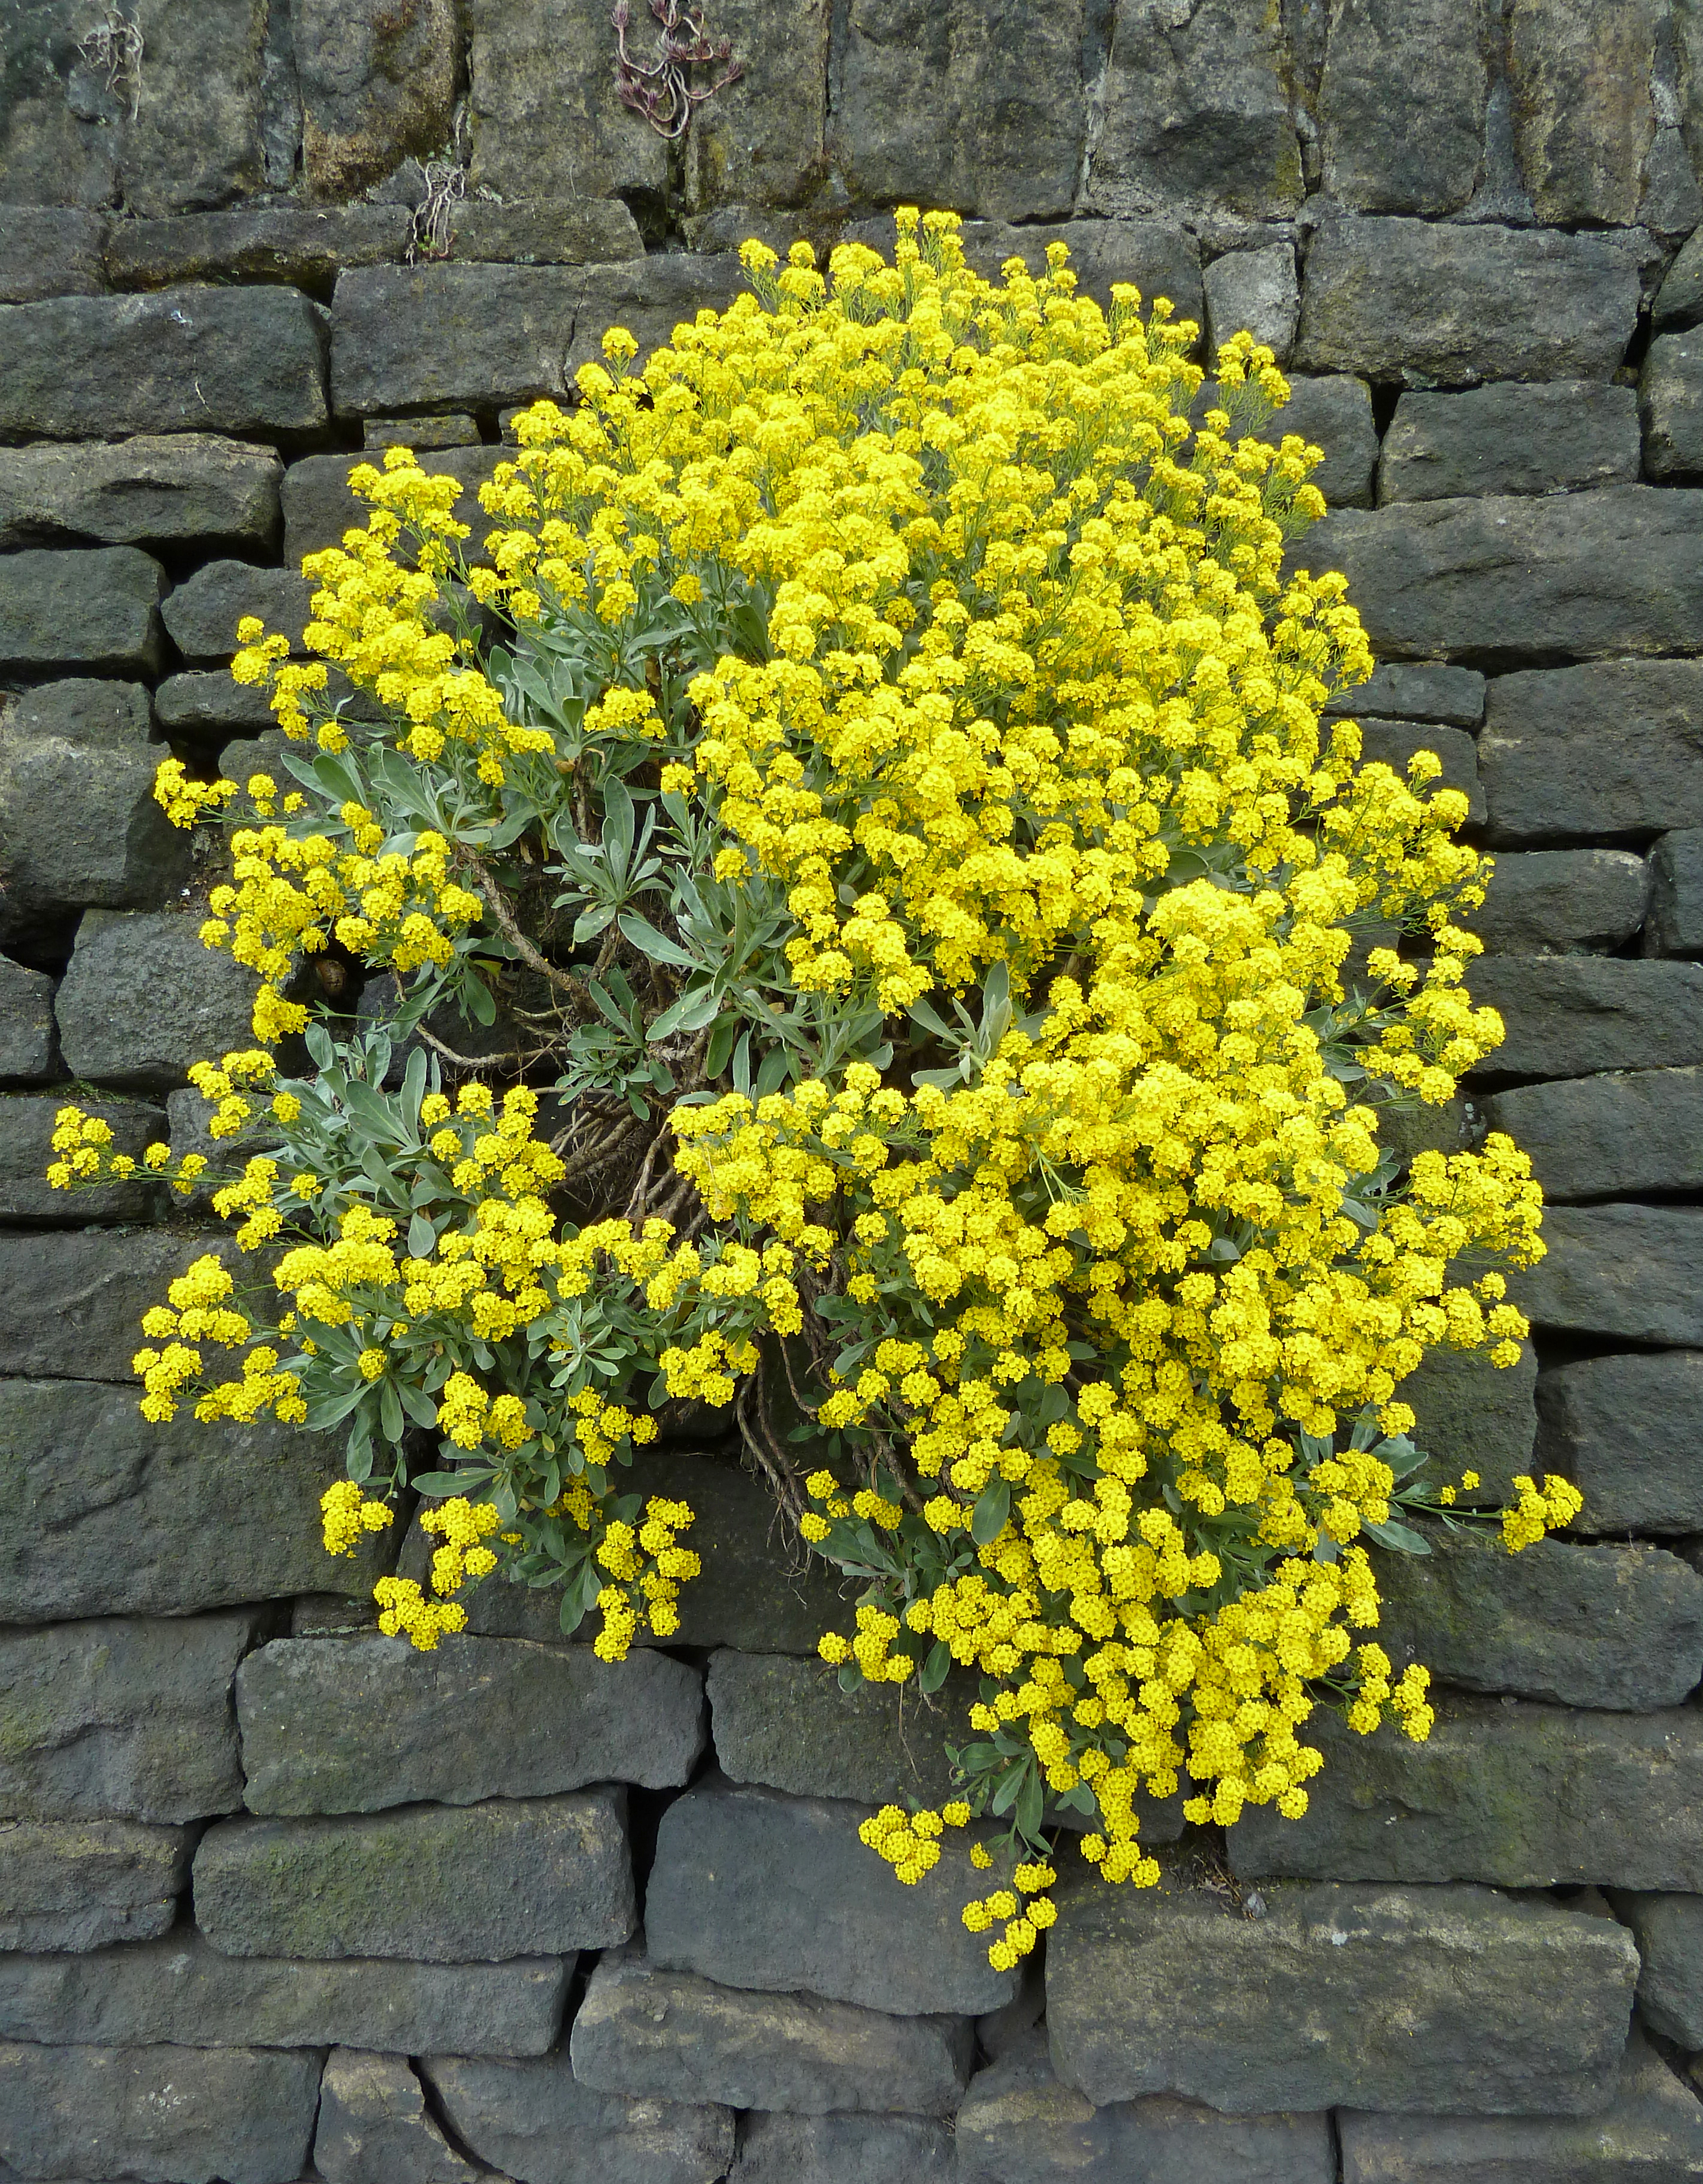 Fileyellow Flowers In The Wallg Wikimedia Commons